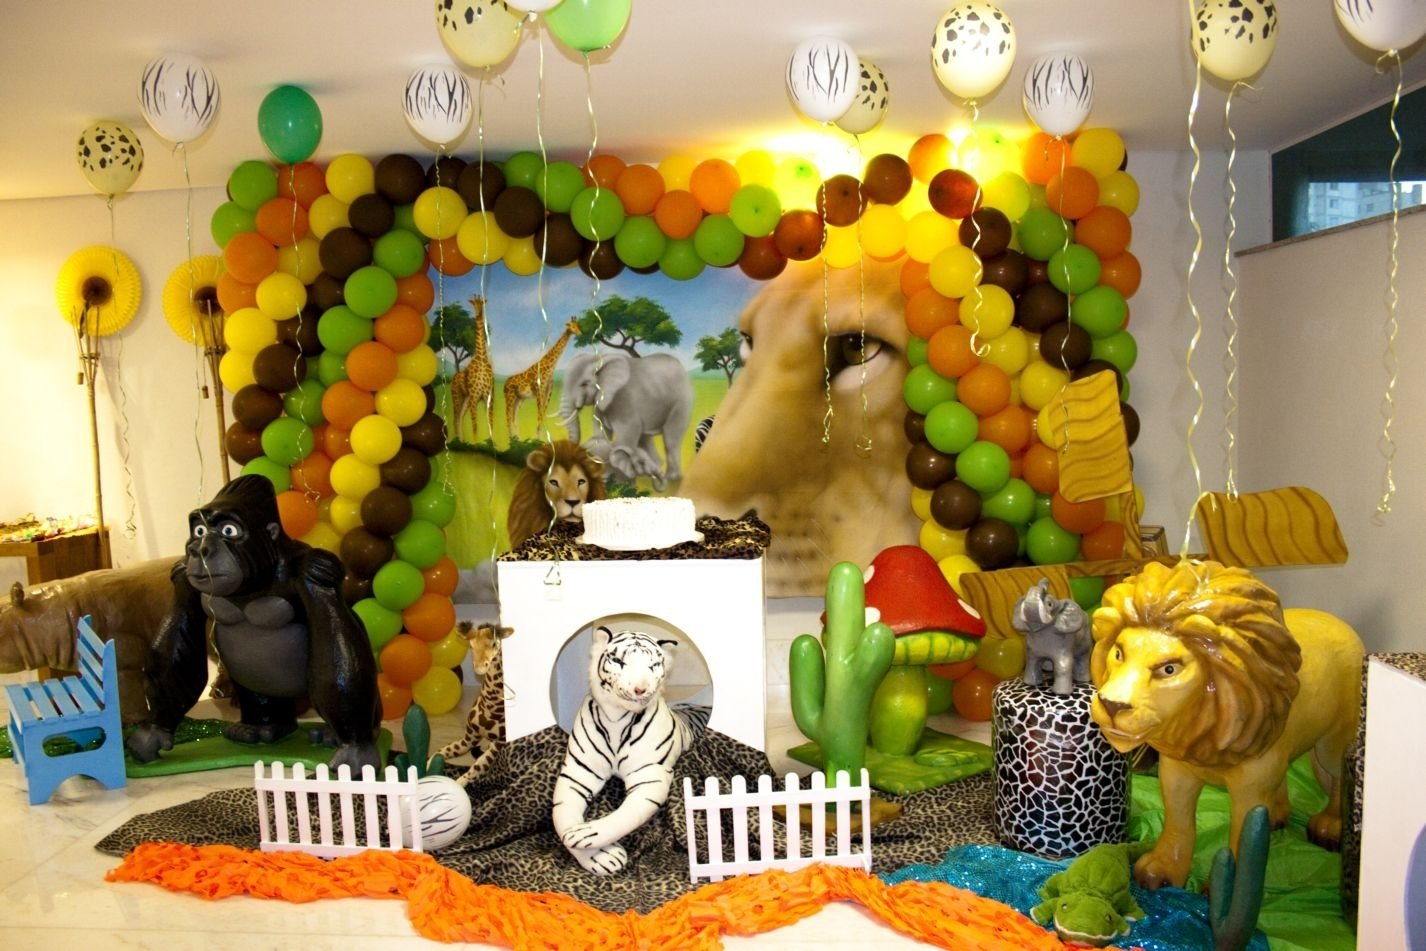 10 Famous Baby Shower Safari Theme Ideas safari baby shower decorations that look cute and beautiful home 2020